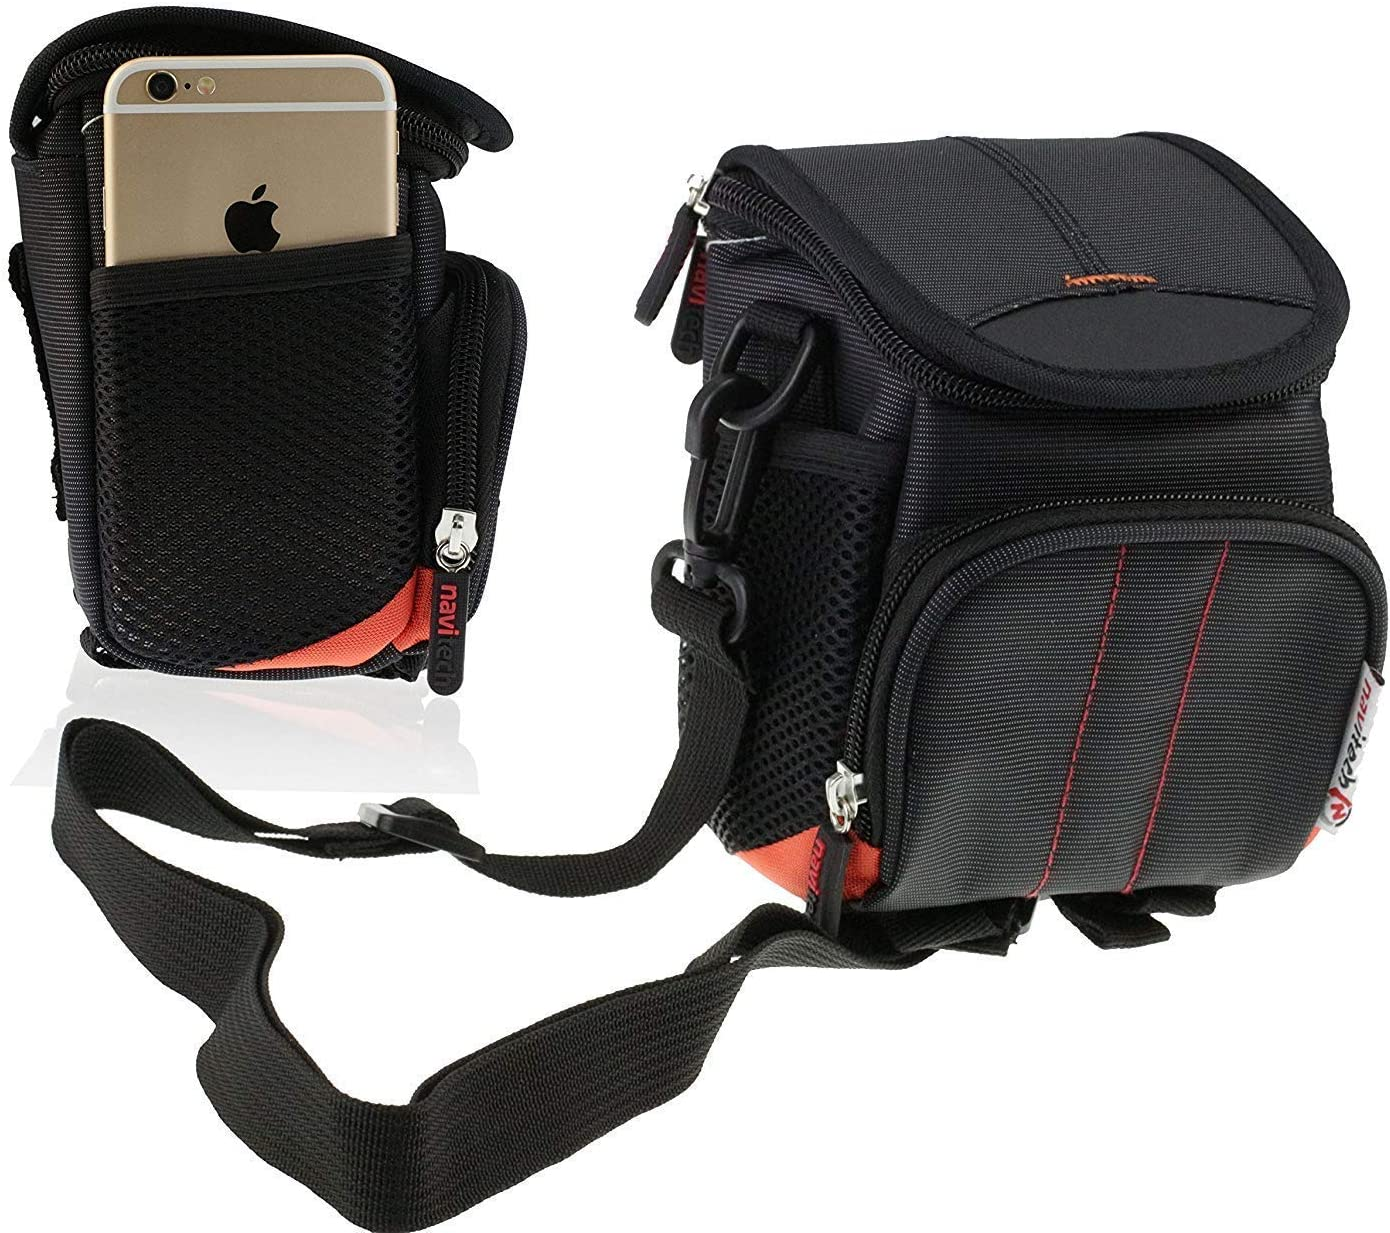 Navitech Black Instant Camera Sales of SALE items from new works Carrying Case Bag Latest item Travel Compa and